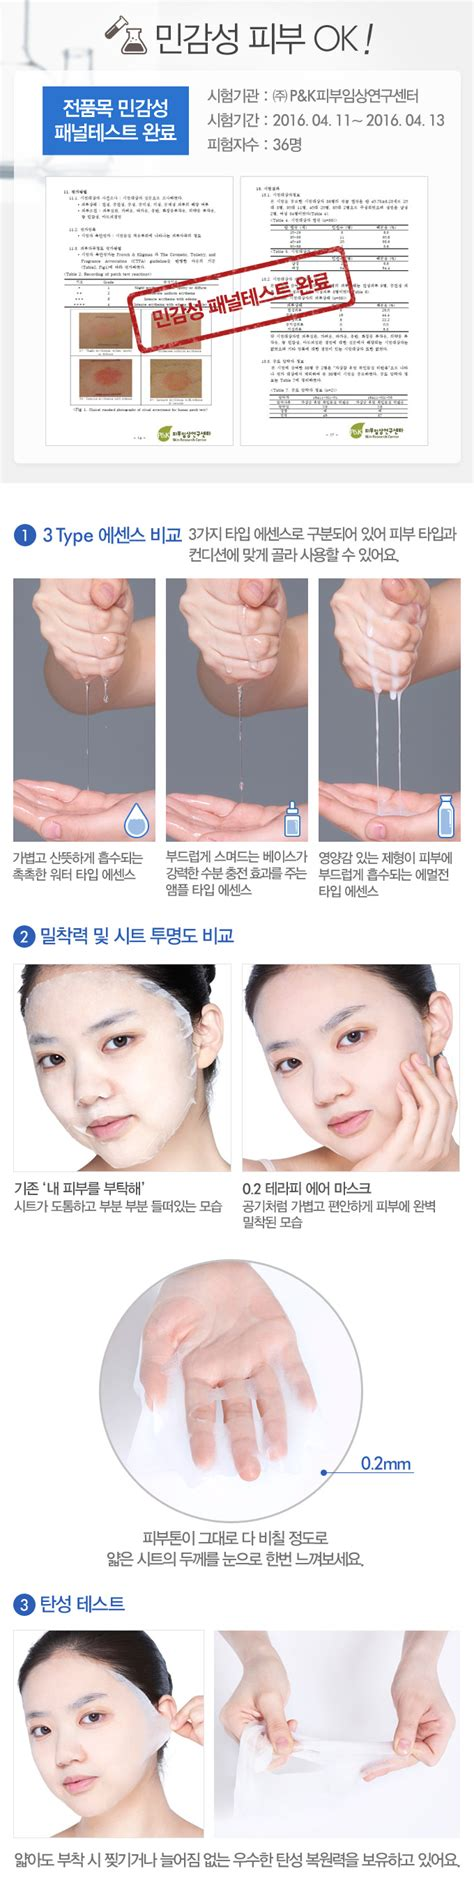 Etude House 02 Therapy Air Mask Hyaluronic Acid etude house 0 2 therapy air mask 20ml 3ea